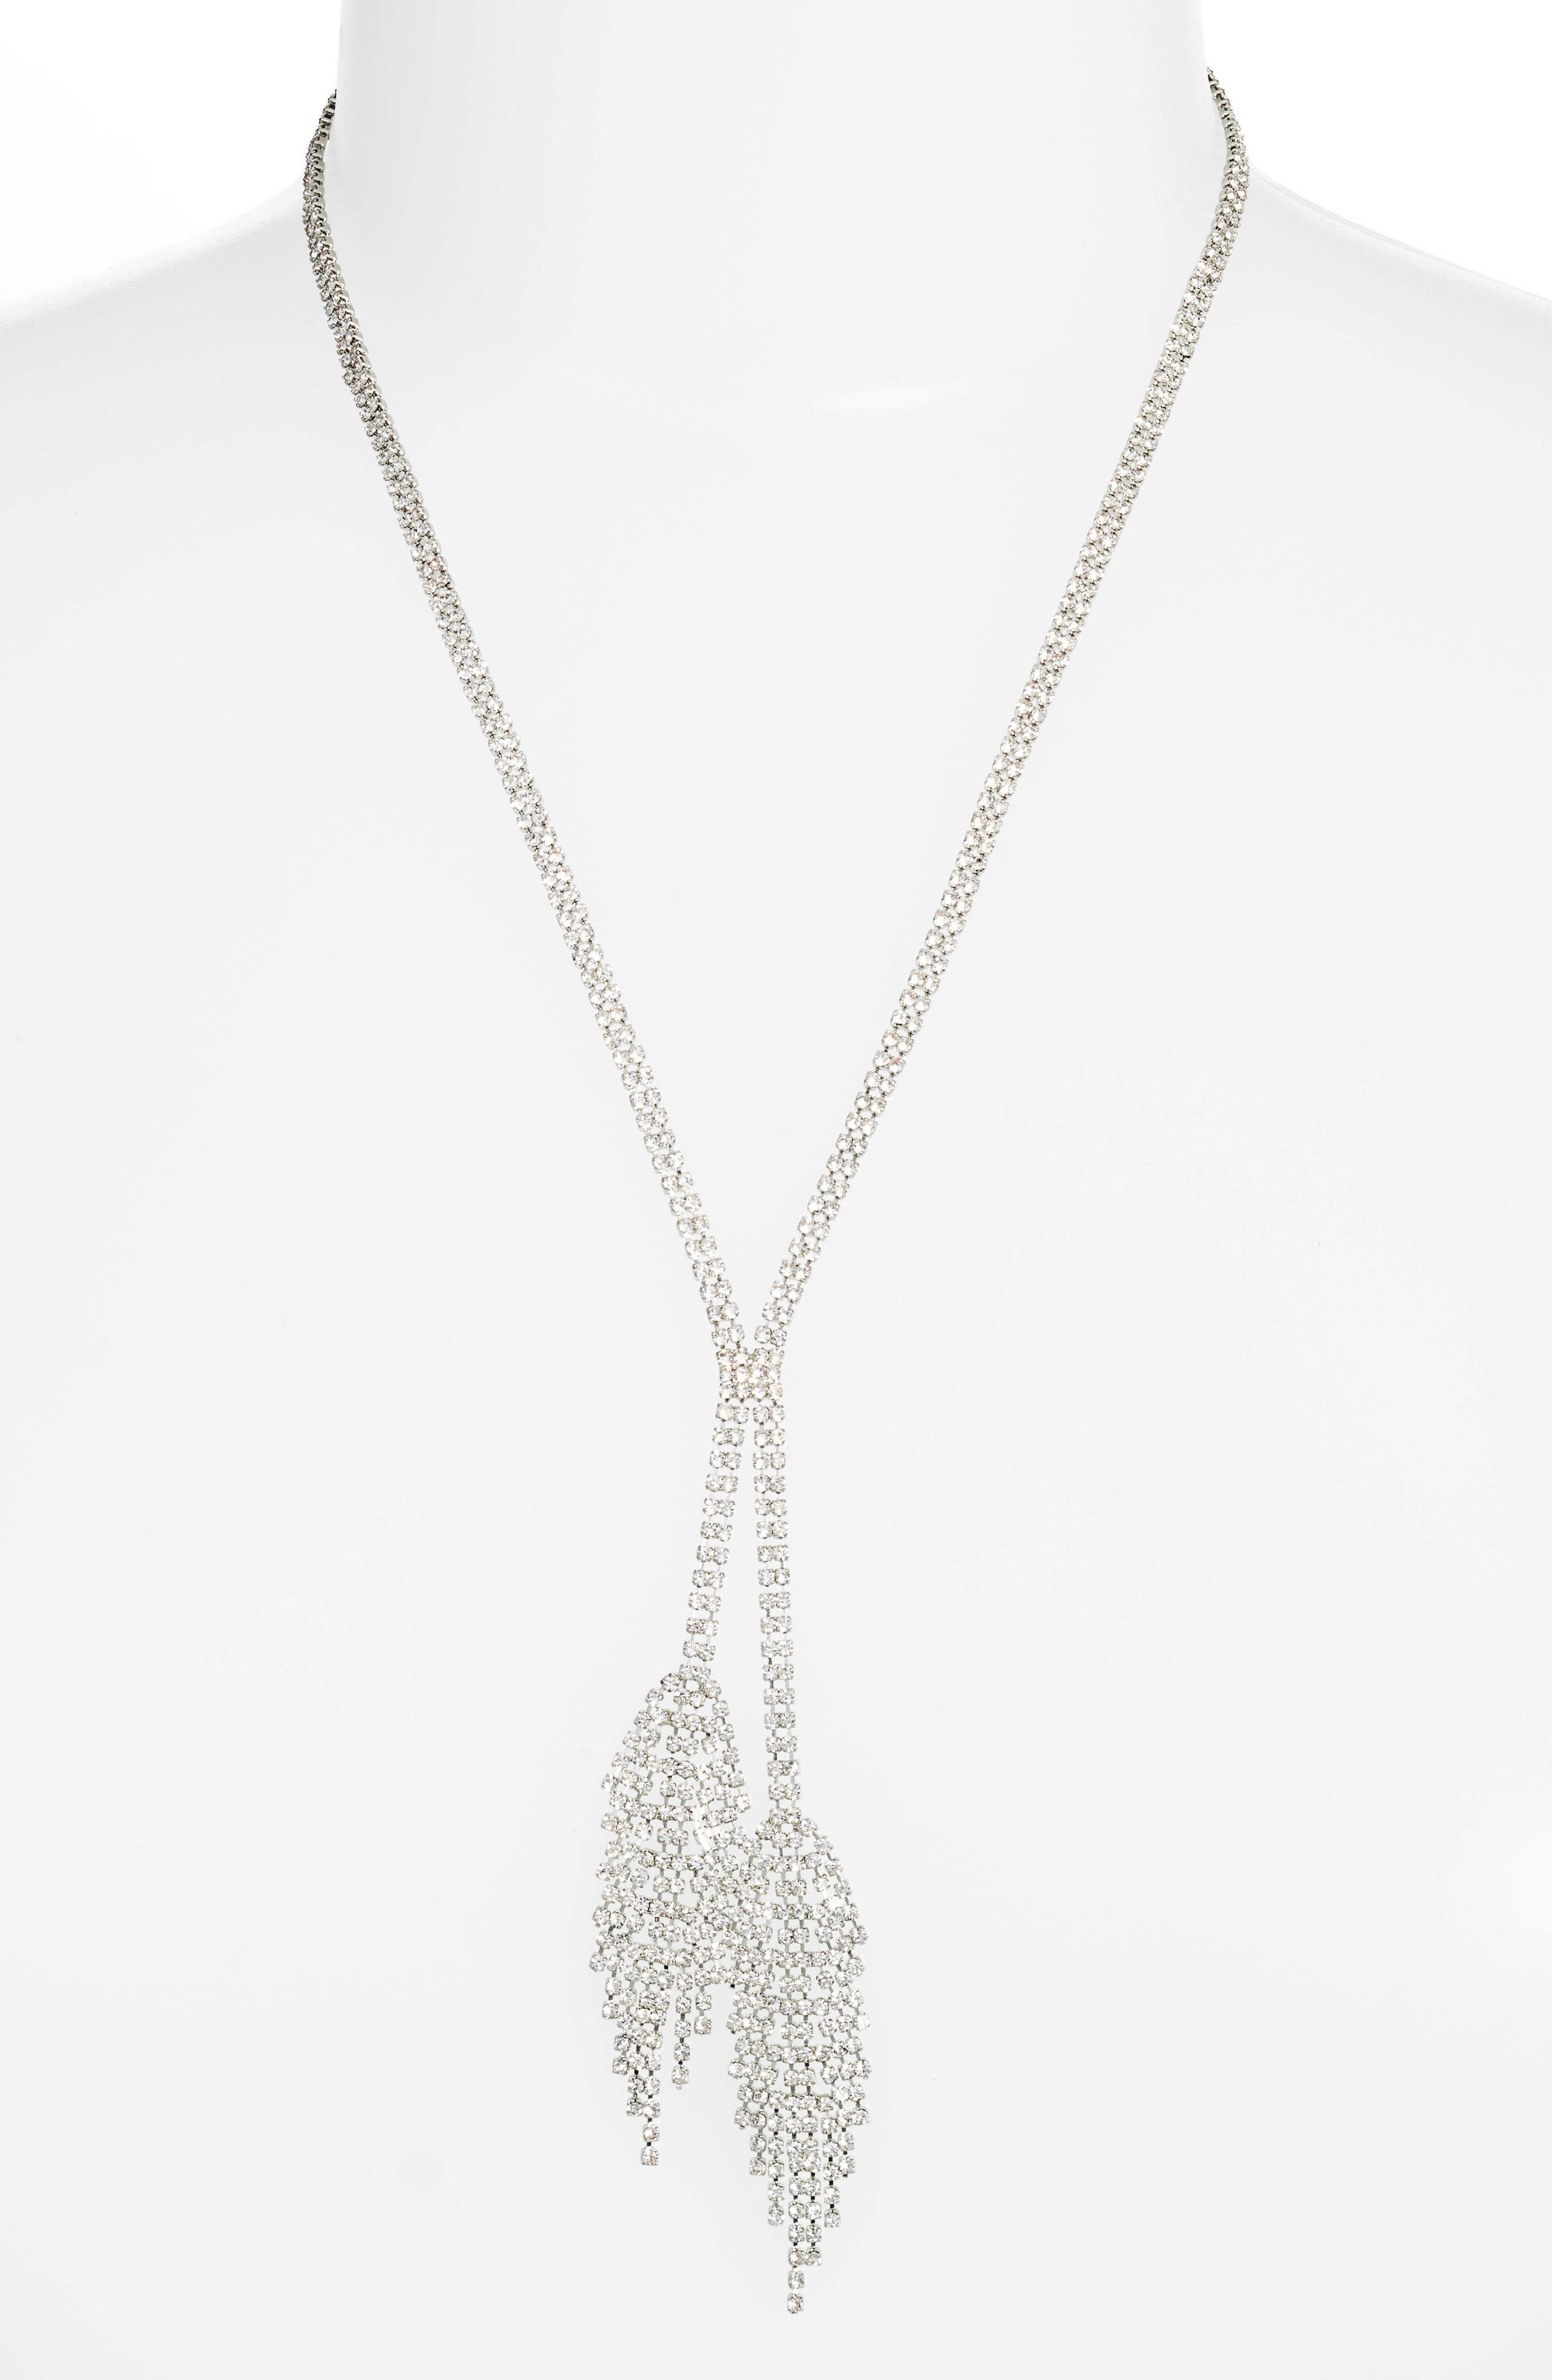 Main Image - CRISTABELLE Double Fringe Crystal Y-Necklace